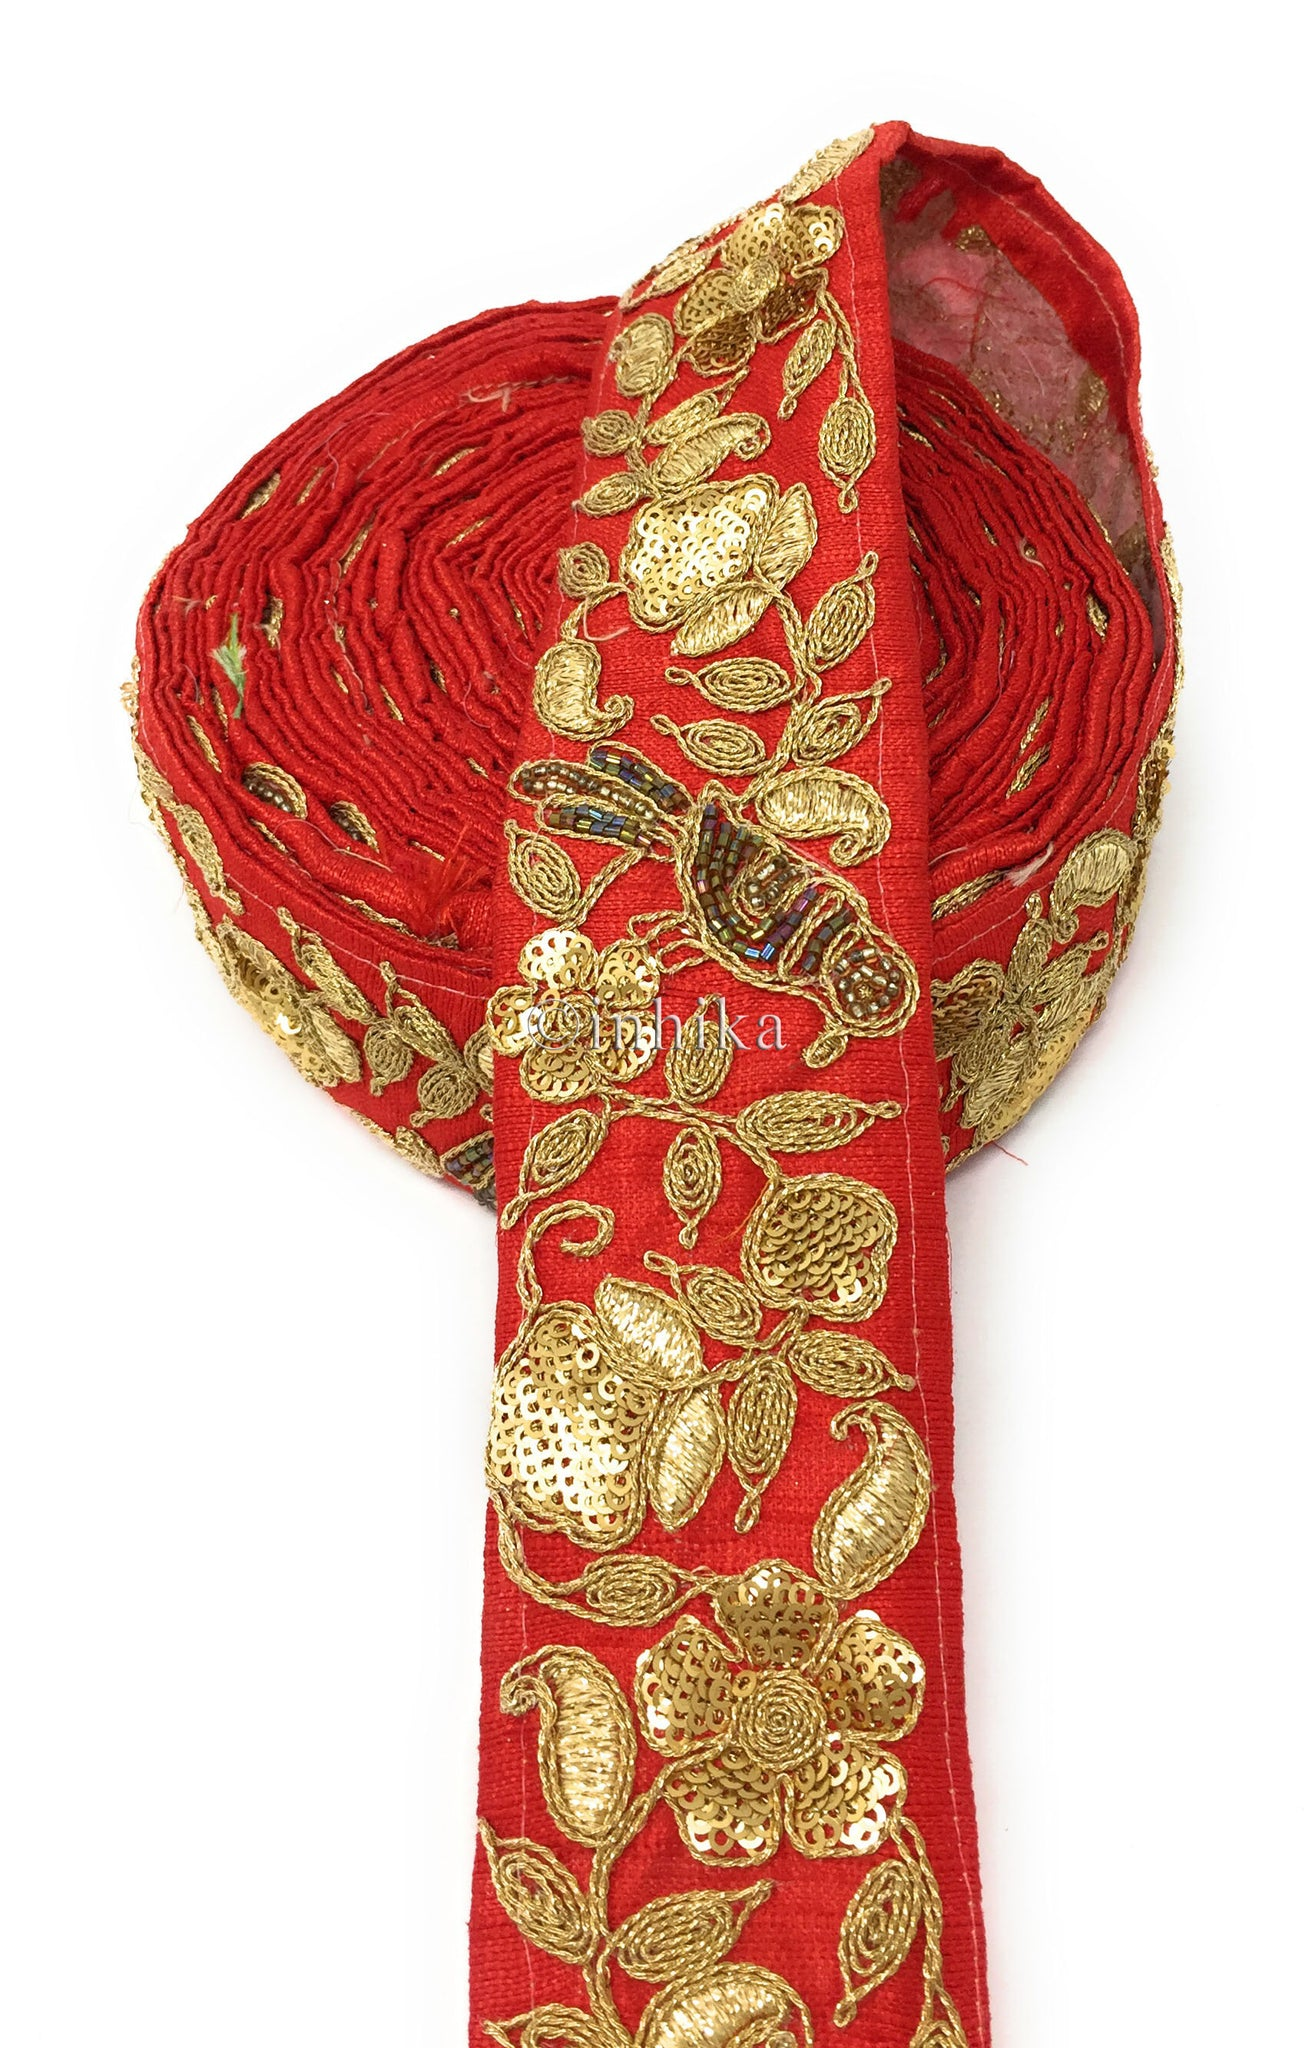 9 Meter (Yard) Roll of Lace  Red Cotton Mix Parrot Gold Multicolour Beads